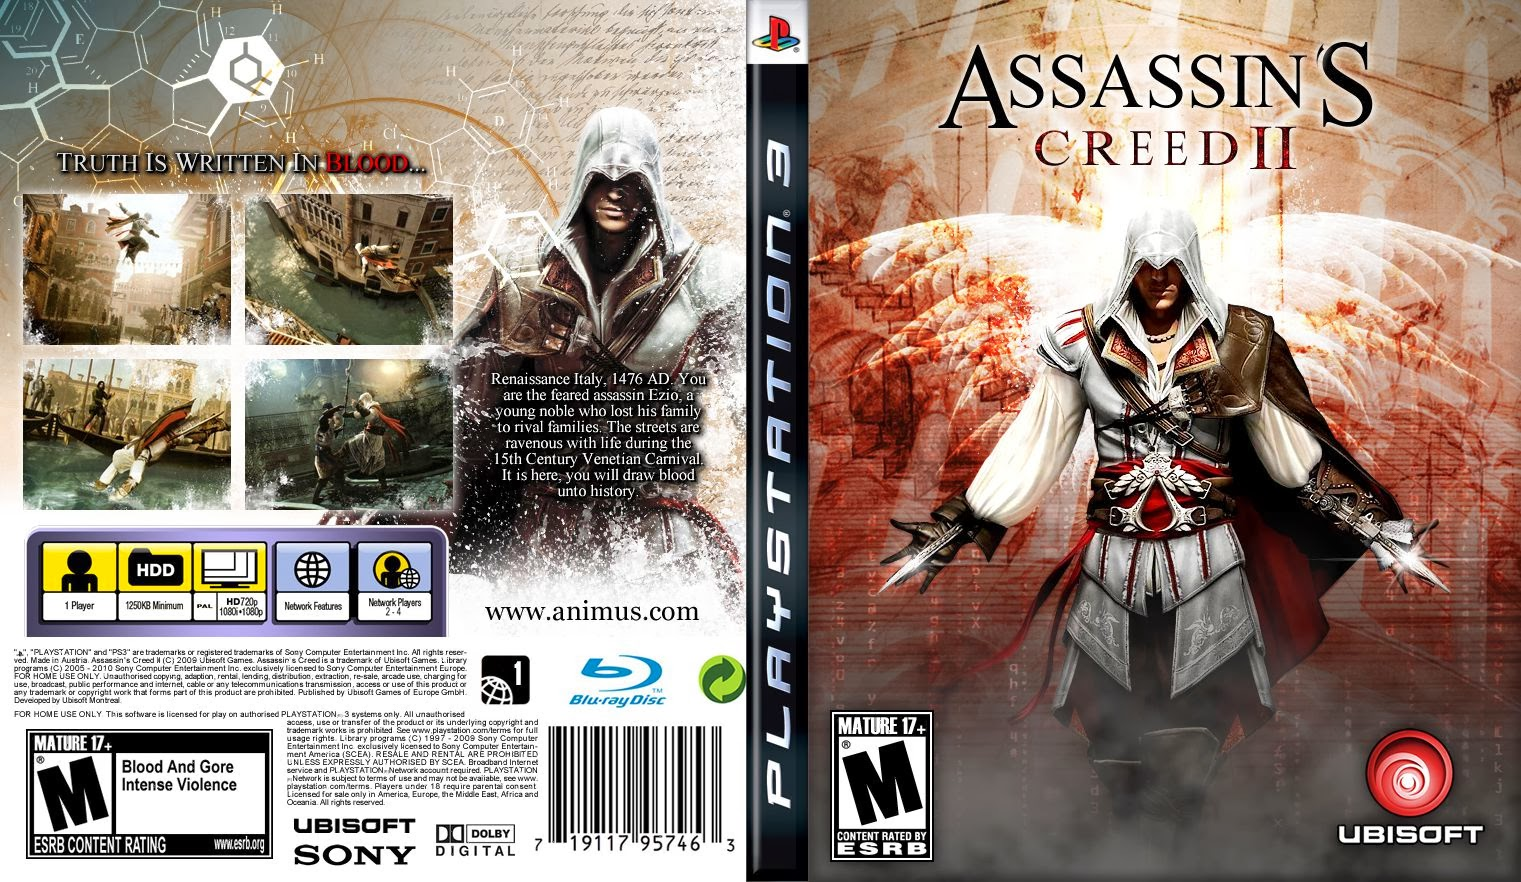 Assassin creed 2 mature rating